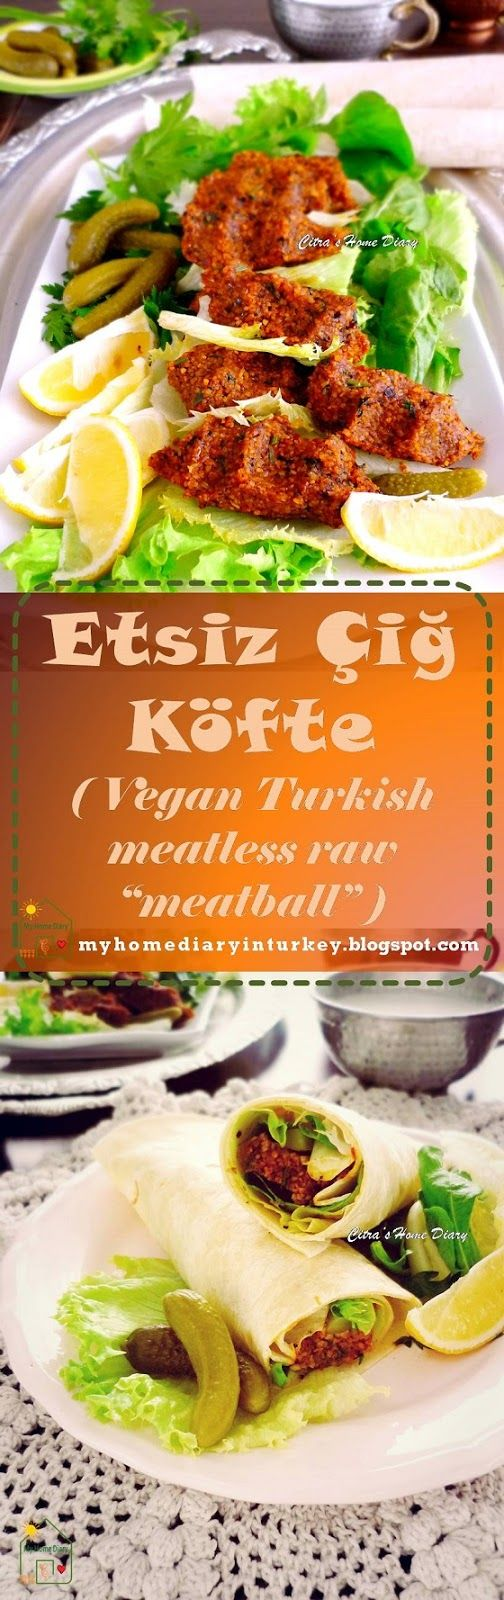 "Etsiz Çiğ Köfte / Turkish Meatless Raw  kofte ""meatball"" . #turkishfood #veganrecipe #bulgur #kofte #cigkofte #turkishstreetfood"